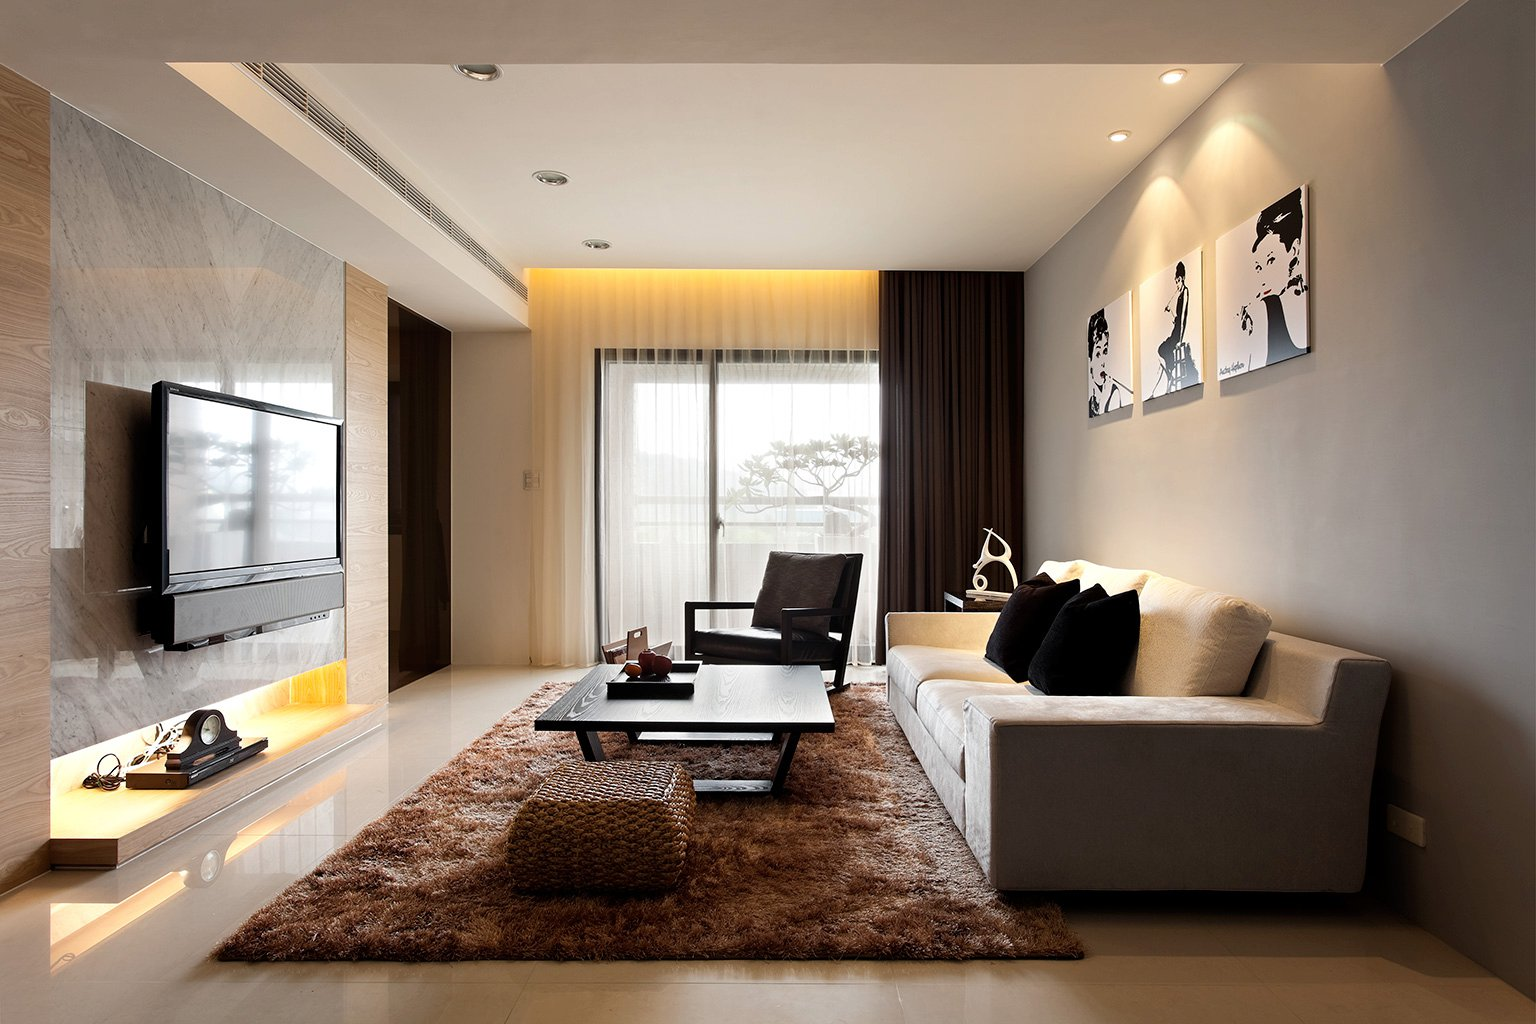 Contemporary Room Decor Contemporary Living Roomscontemporary Living Rooms Contemporary